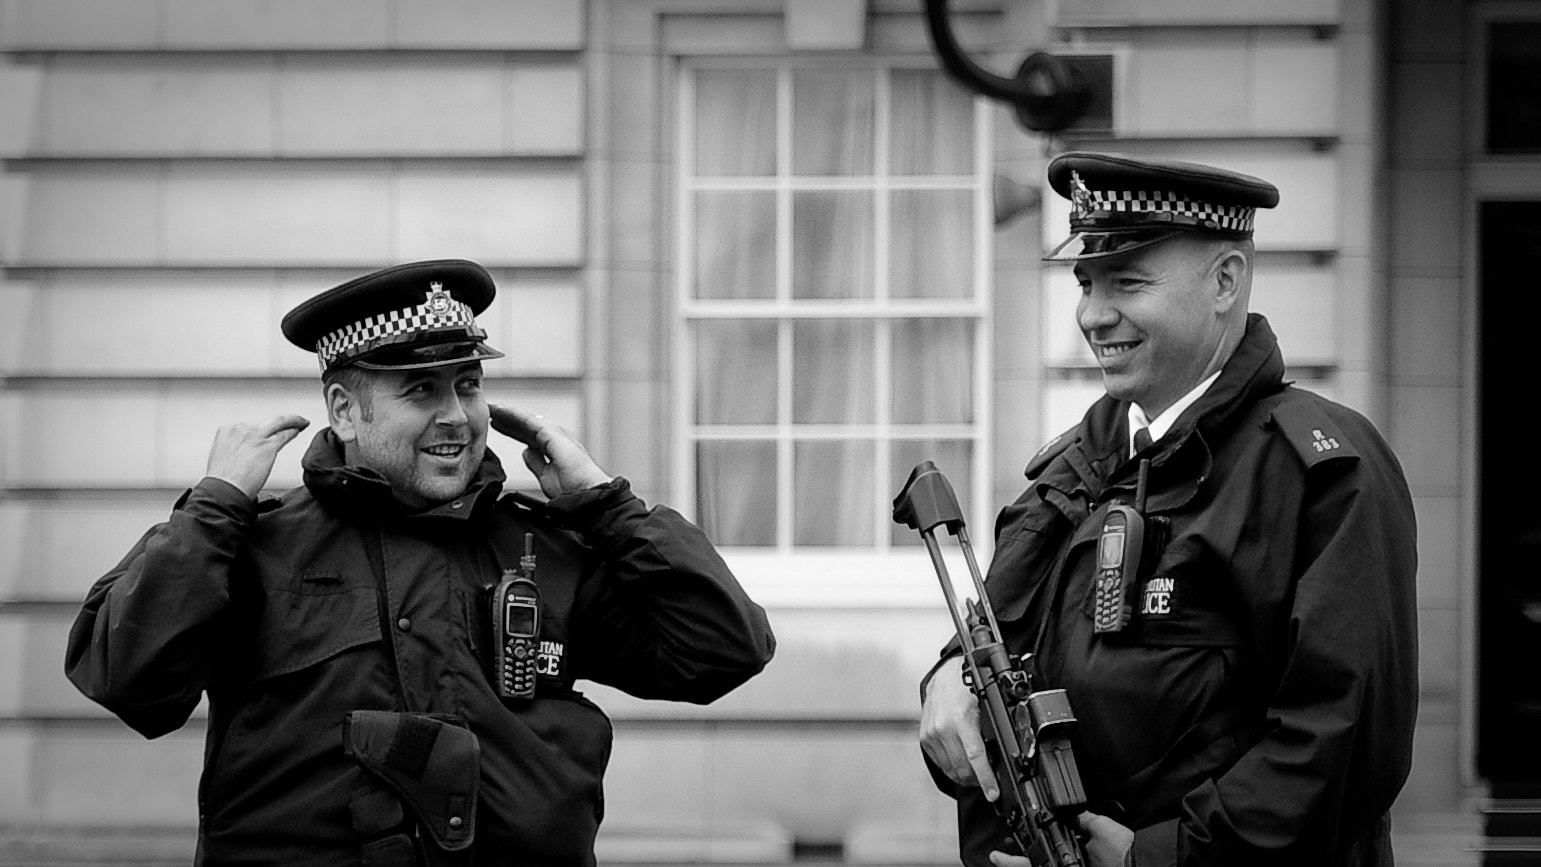 Photograph Police Story by Cristian Marcos on 500px